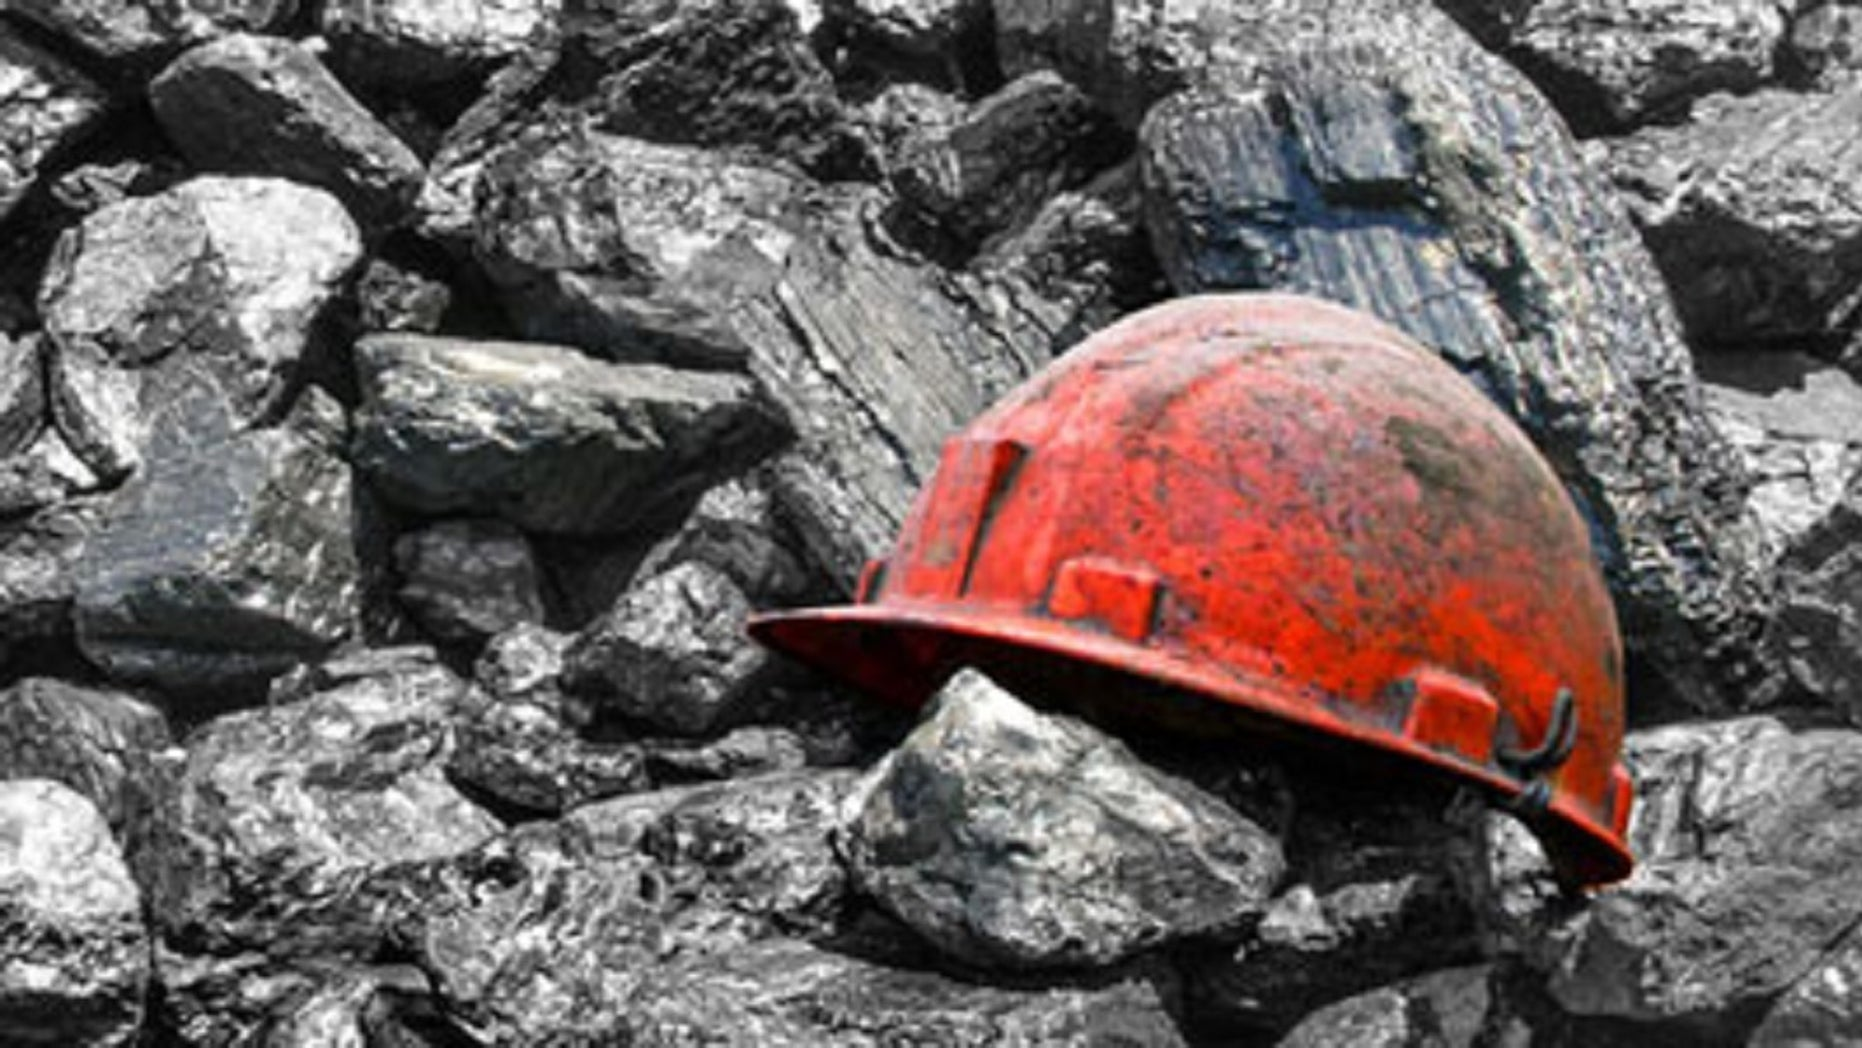 A West Virginia mine rescue team is searching for four people reported missing at an underground coal mine.